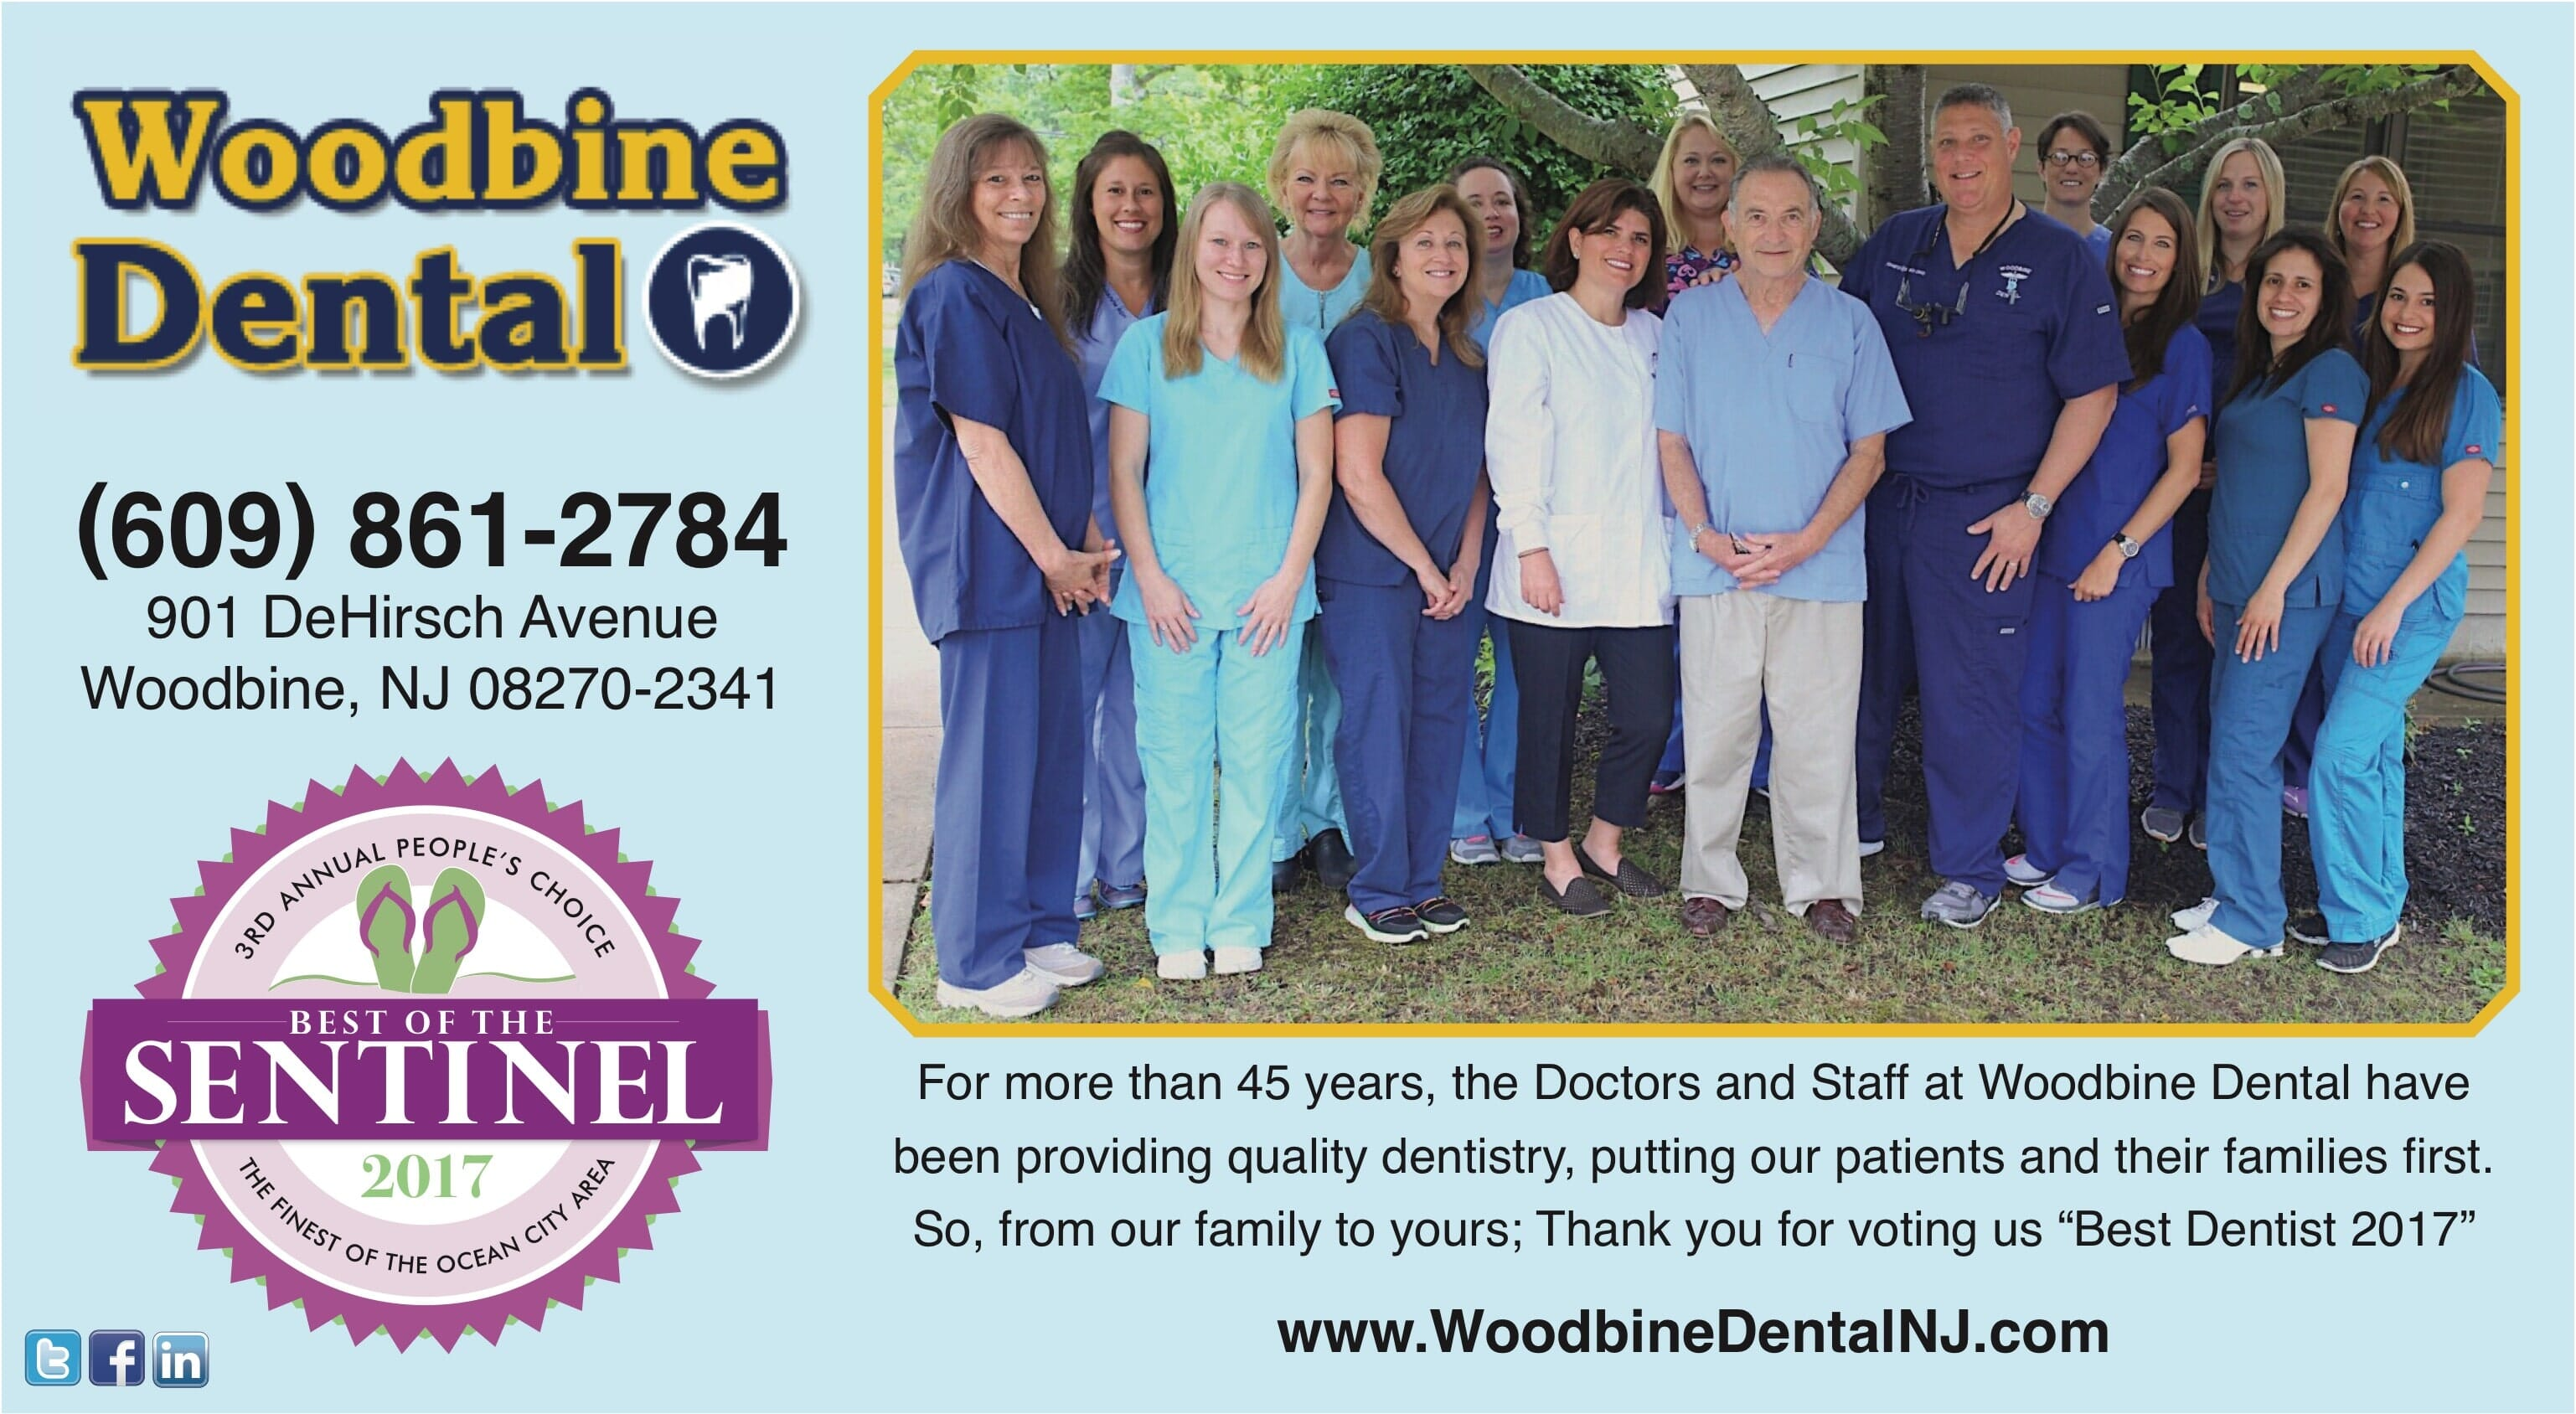 woodbine dental